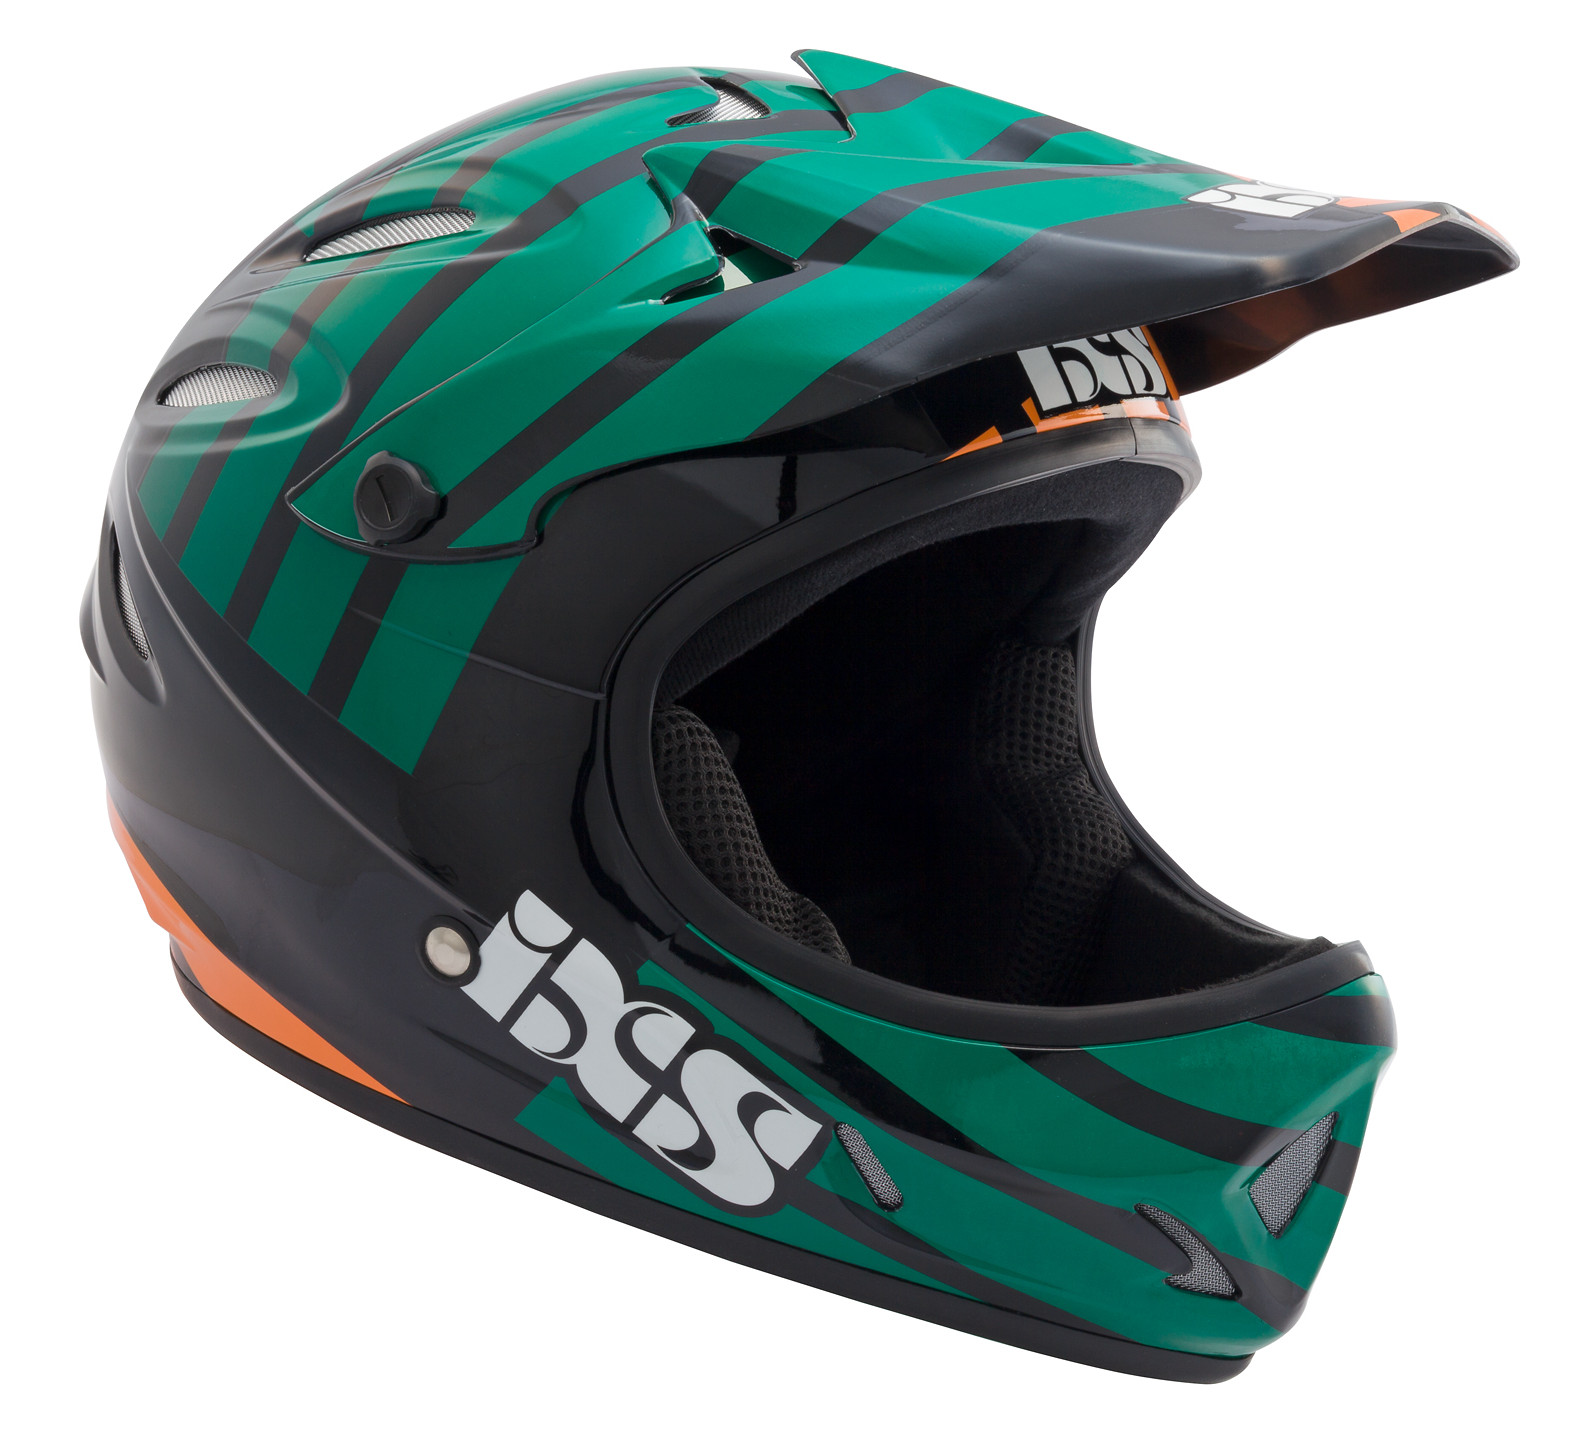 iXS Phobos-Smoke Full Face Helmet phobos smoke orange 1